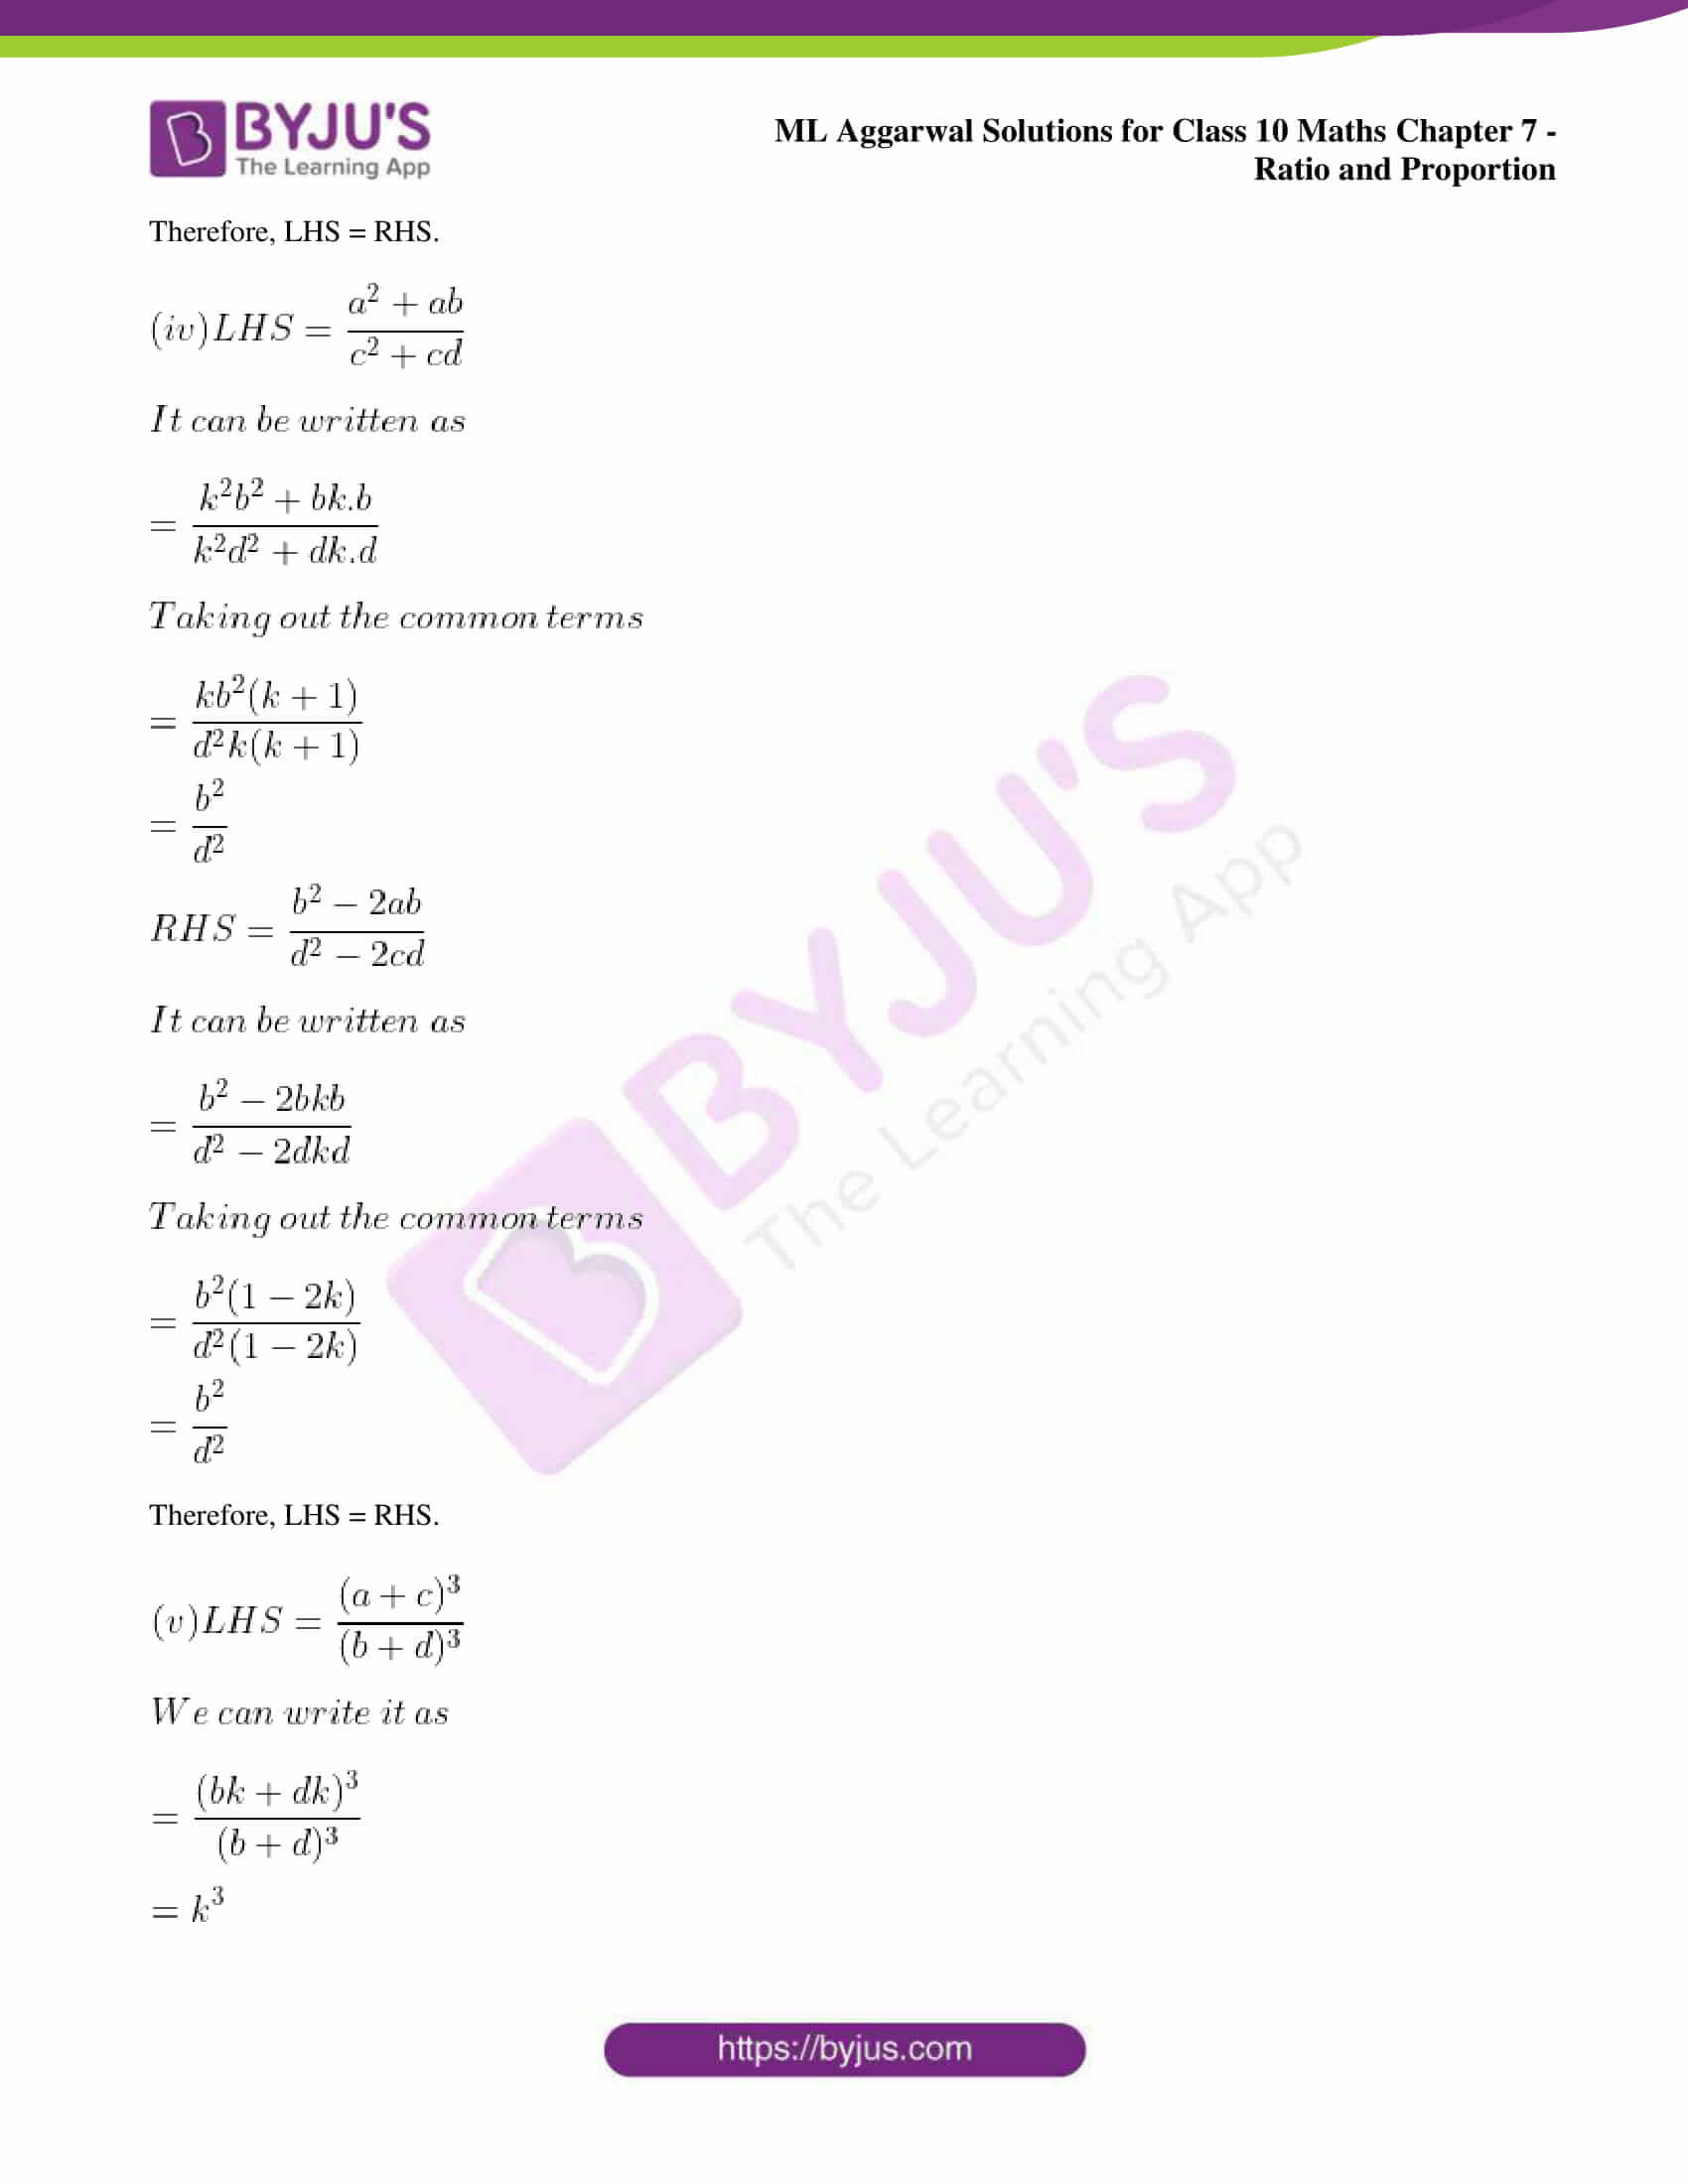 ml aggarwal solutions for class 10 maths chapter 7 31